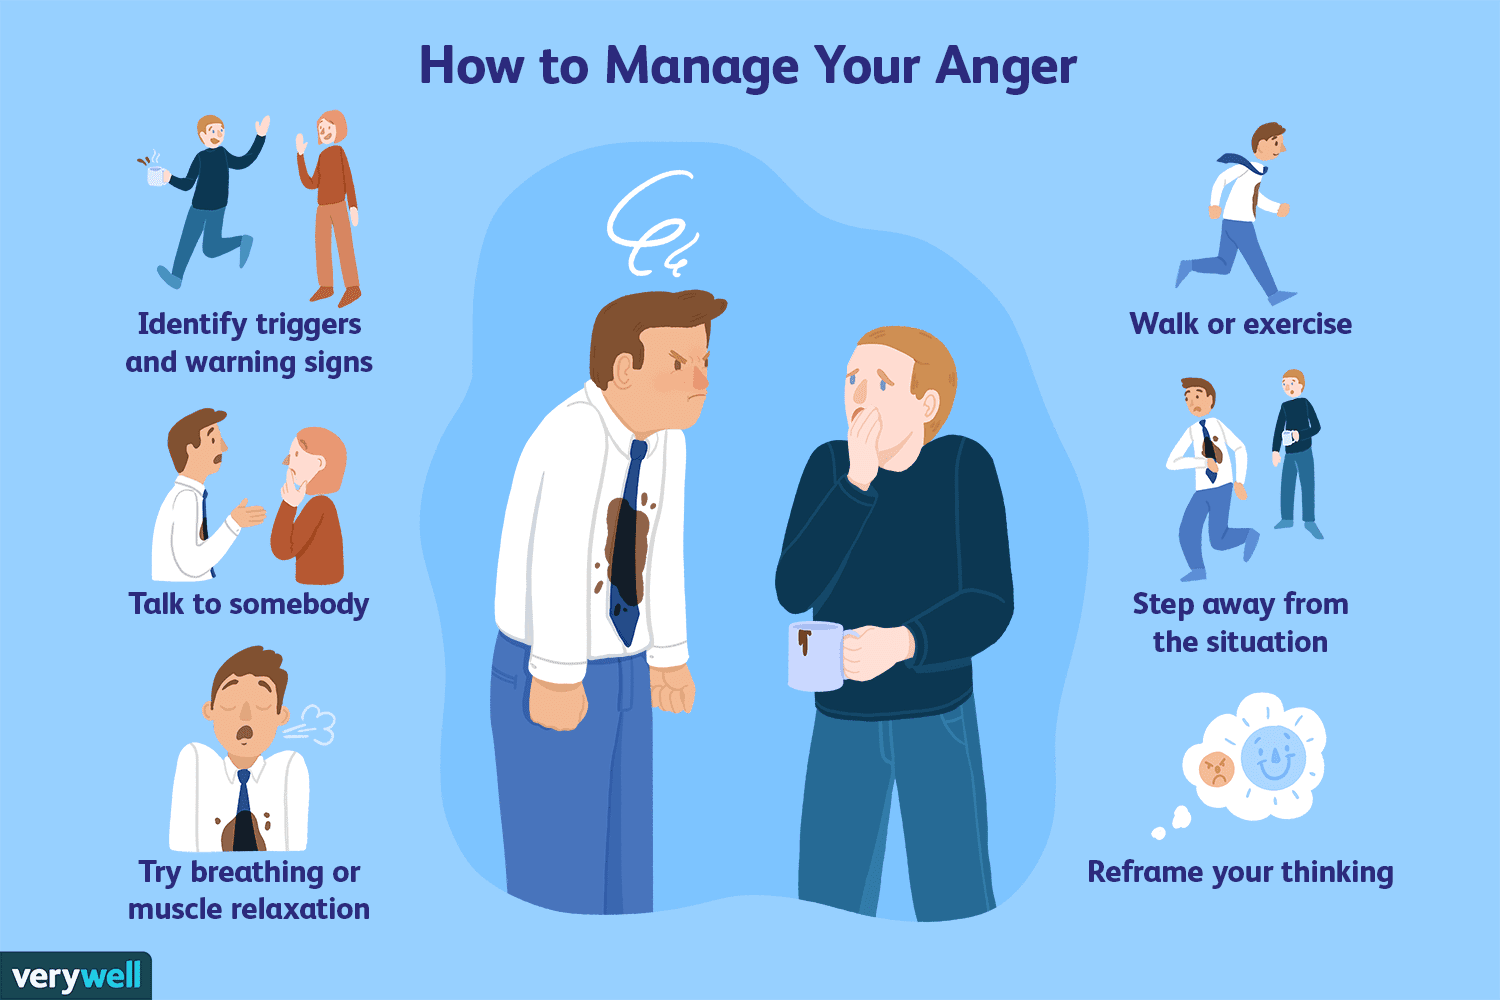 Image depicts how to manage your anger